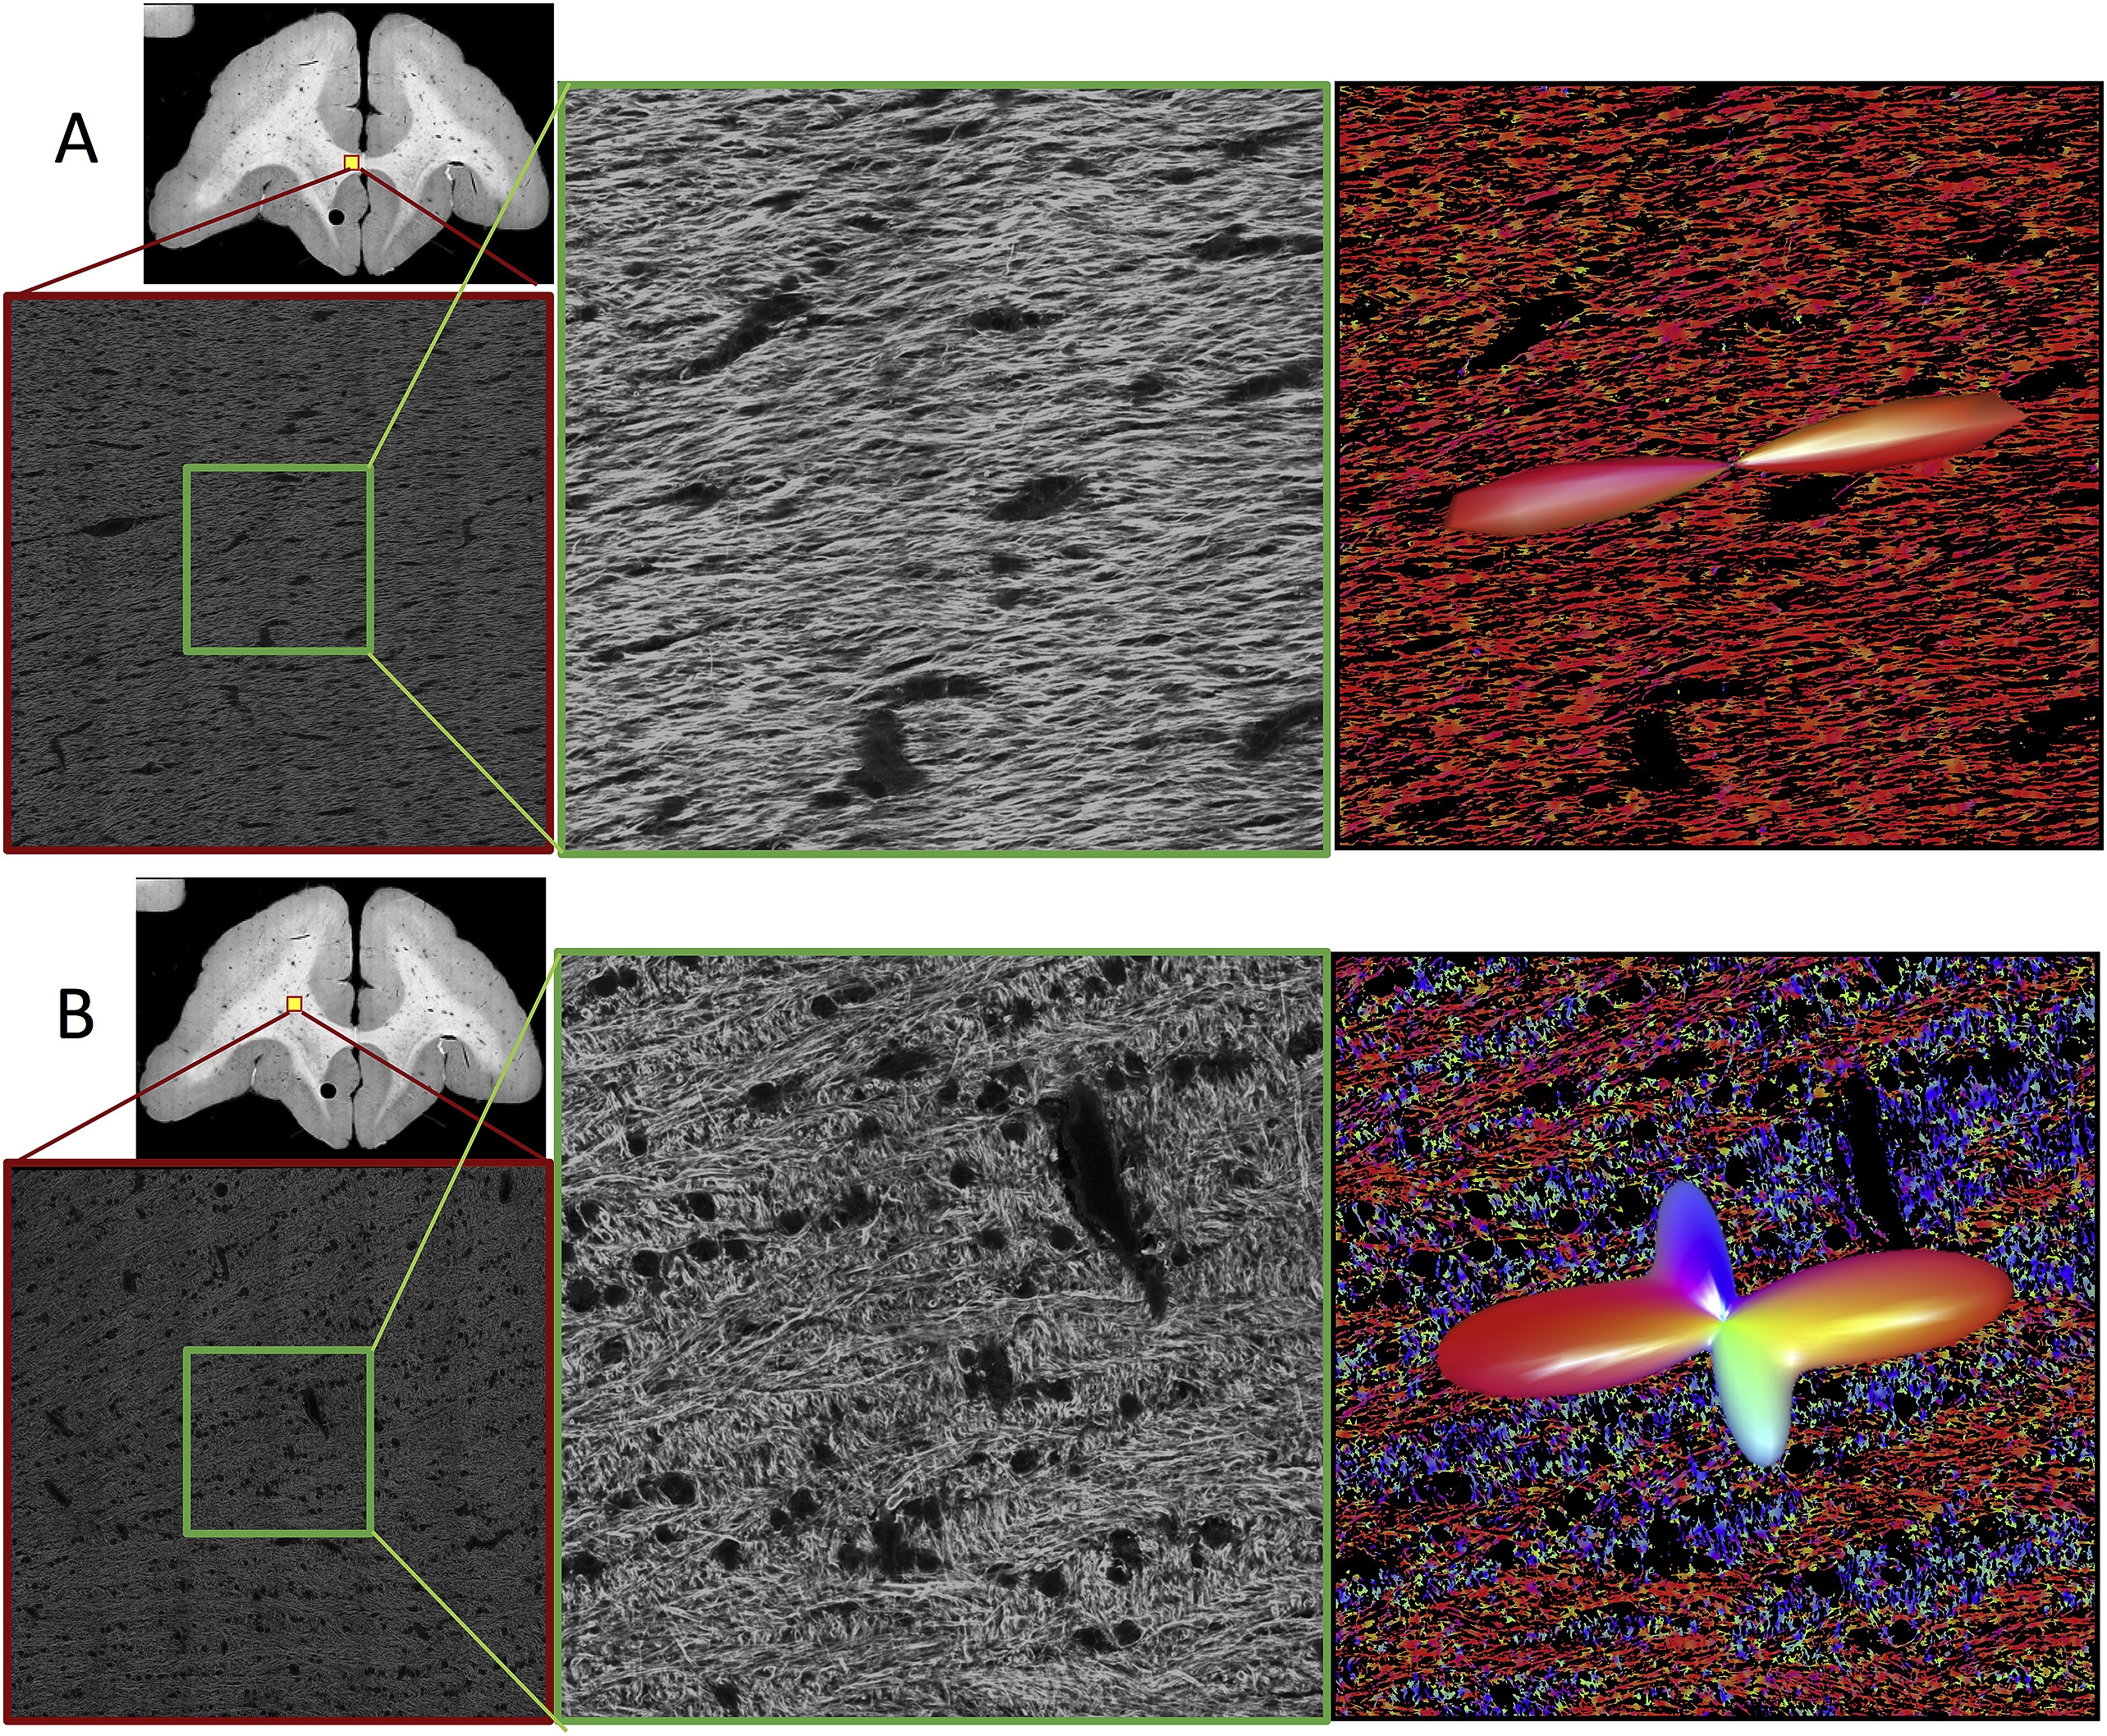 Qualitative confocal images. Representative confocal data (of a single slice) are shown for single (A) and crossing (B) fiber regions. Overview images highlight location of full 3D z-stacks (shown as a single, middle slice). A zoomed regions of interest in the middle of the z-stack (equivalent in size to an MRI voxel) are shown in the middle column. Results from structure tensor analysis are shown as color-coded images (with colors scheme as described in Fig. 1), with the histologically-defined FOD overlaid as 3D glyphs (right).